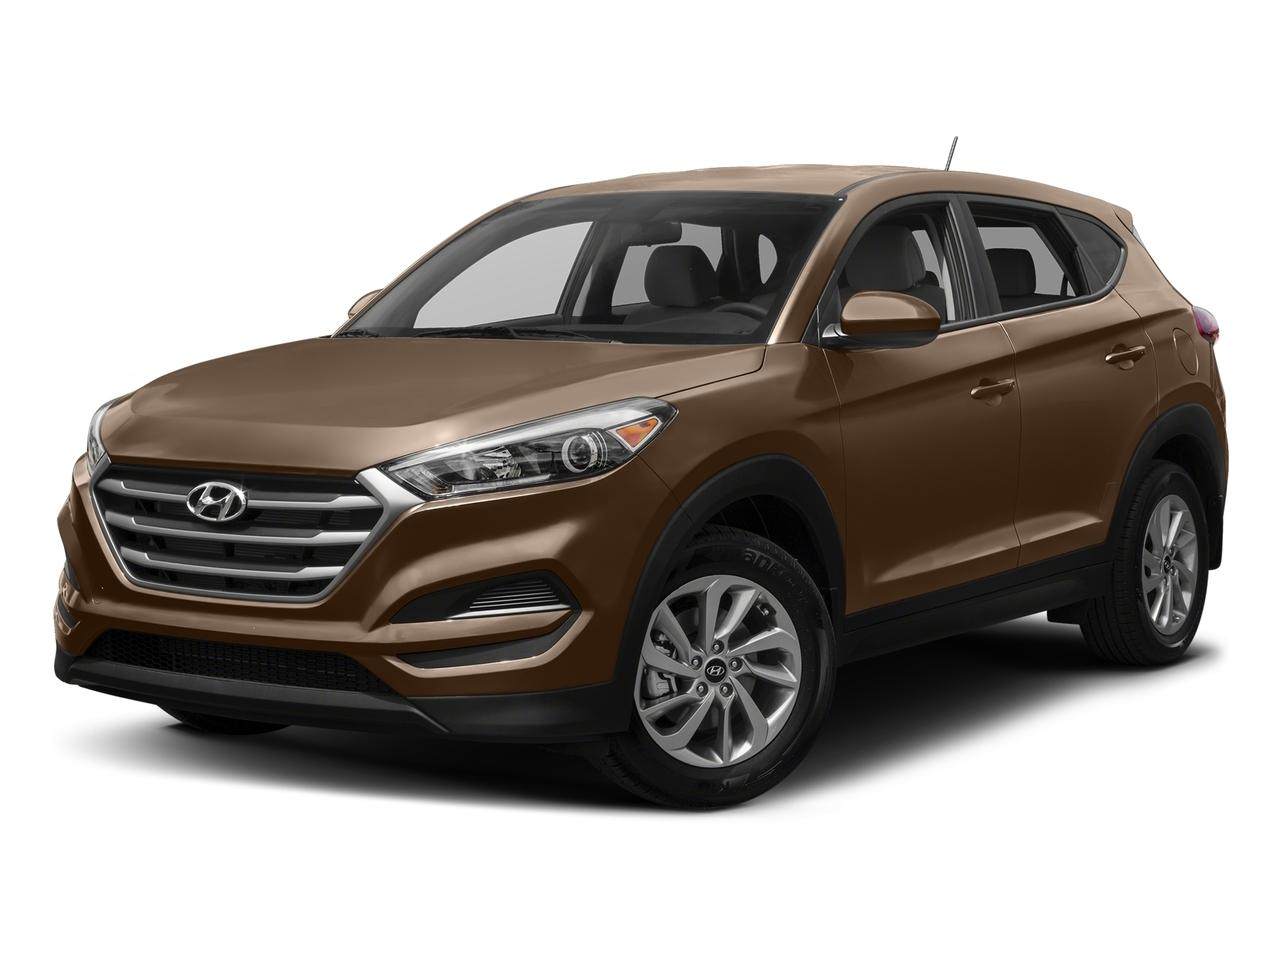 2017 Hyundai Tucson Vehicle Photo in Odessa, TX 79762